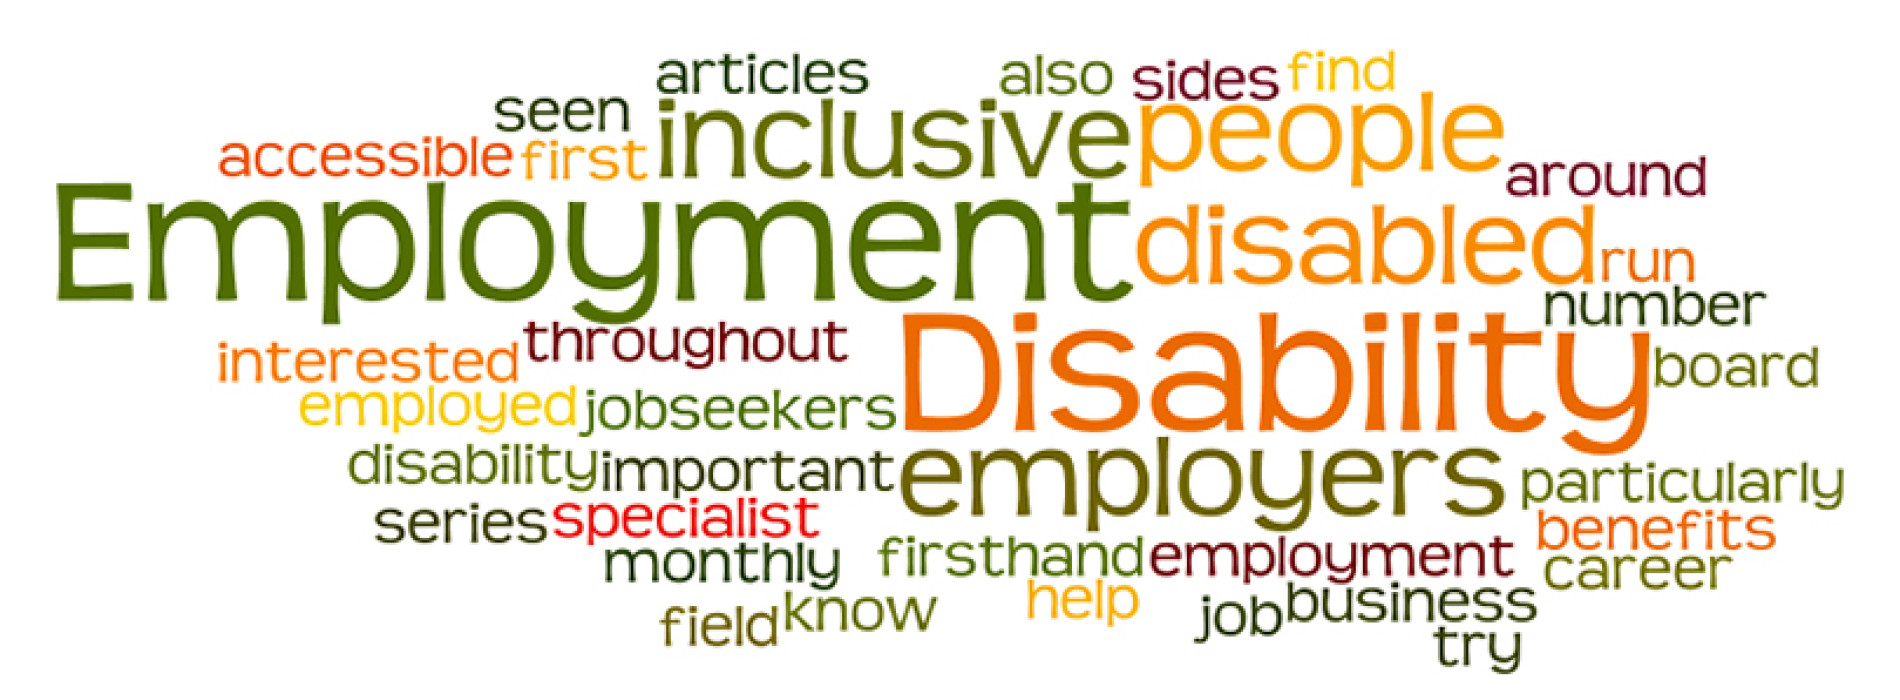 disability and employment answering difficult interview questions disability and employment answering difficult interview questions